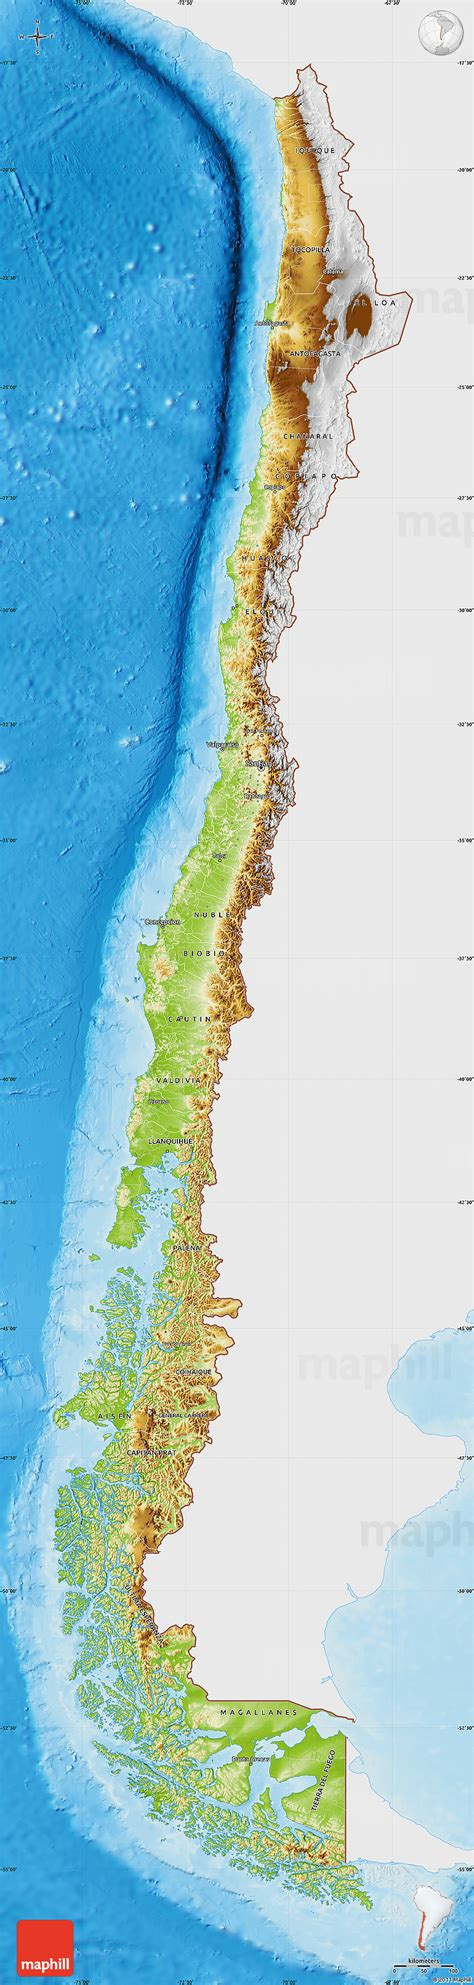 physical map of chile chile physik karte